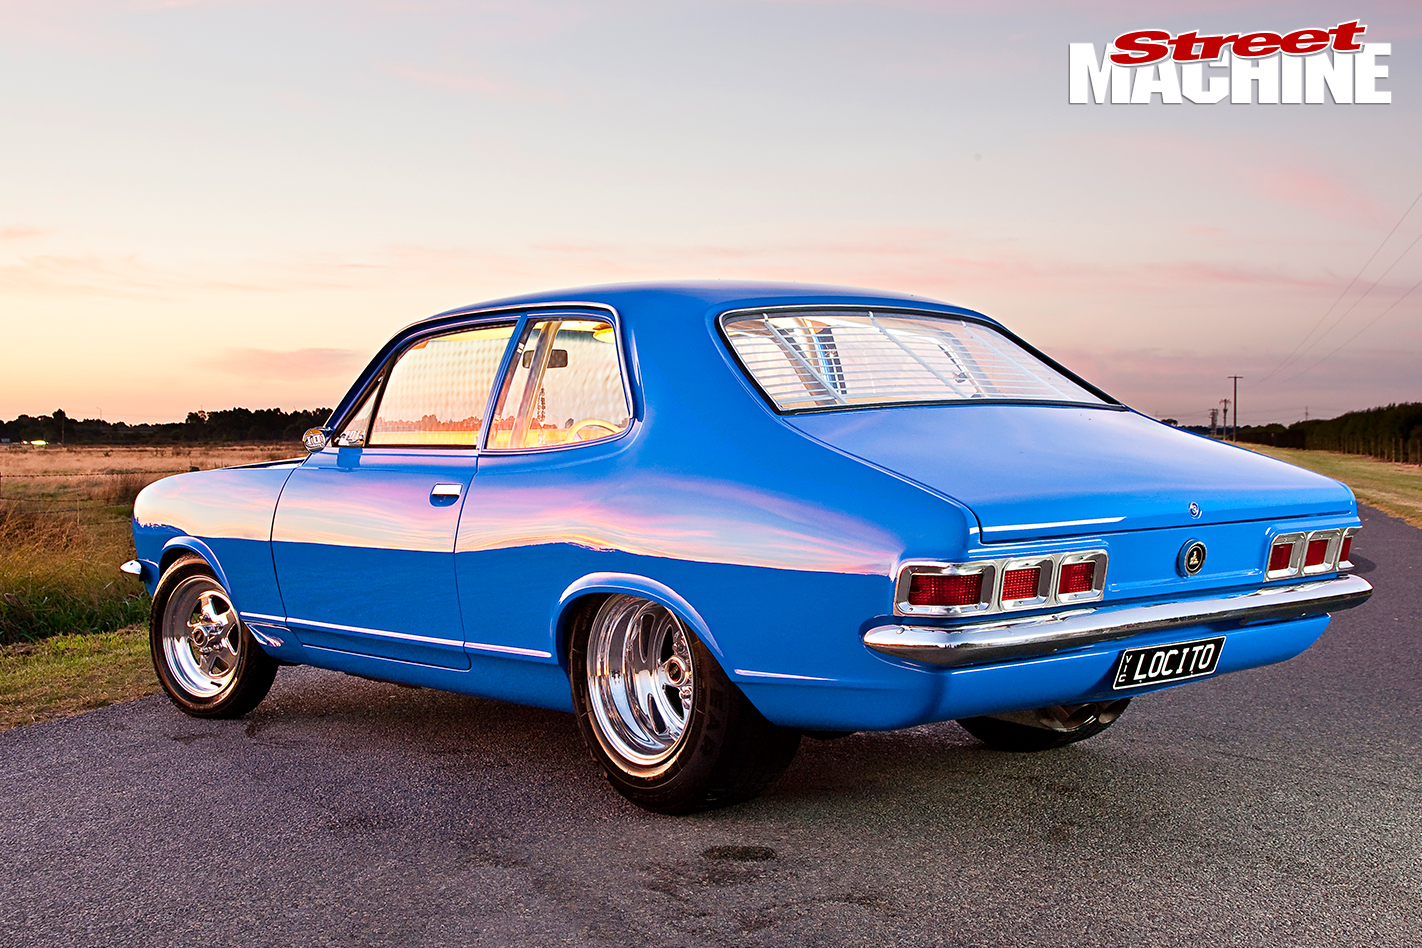 Holden -LJ-Torana -Coupe -side -rear